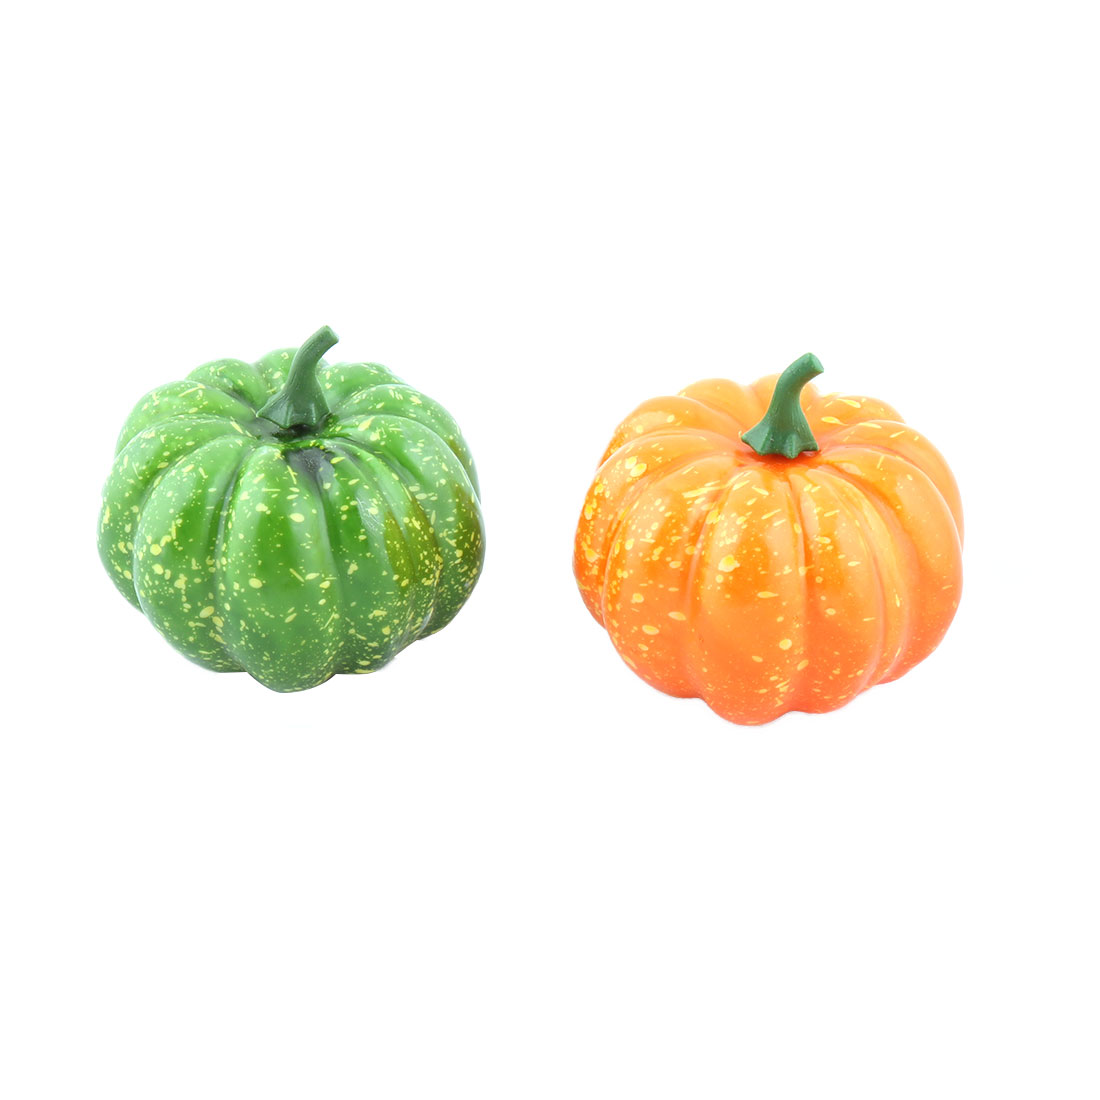 Family Plastic Desk Table Decoration Simulation Artificial Vegetable Pumpkin 2 Pcs